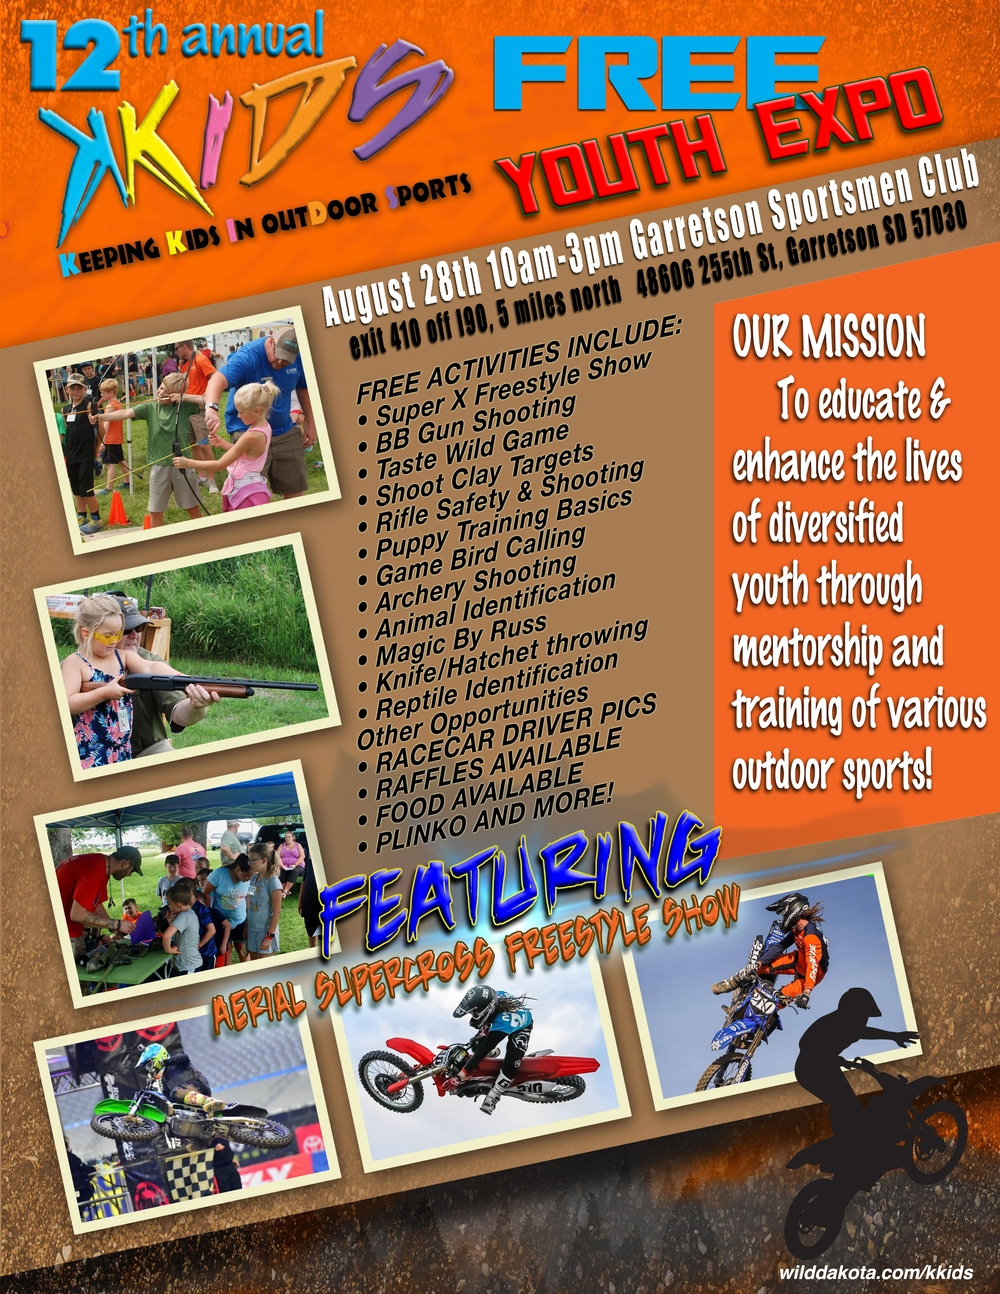 12th Annual KKIDS Outdoor Expo